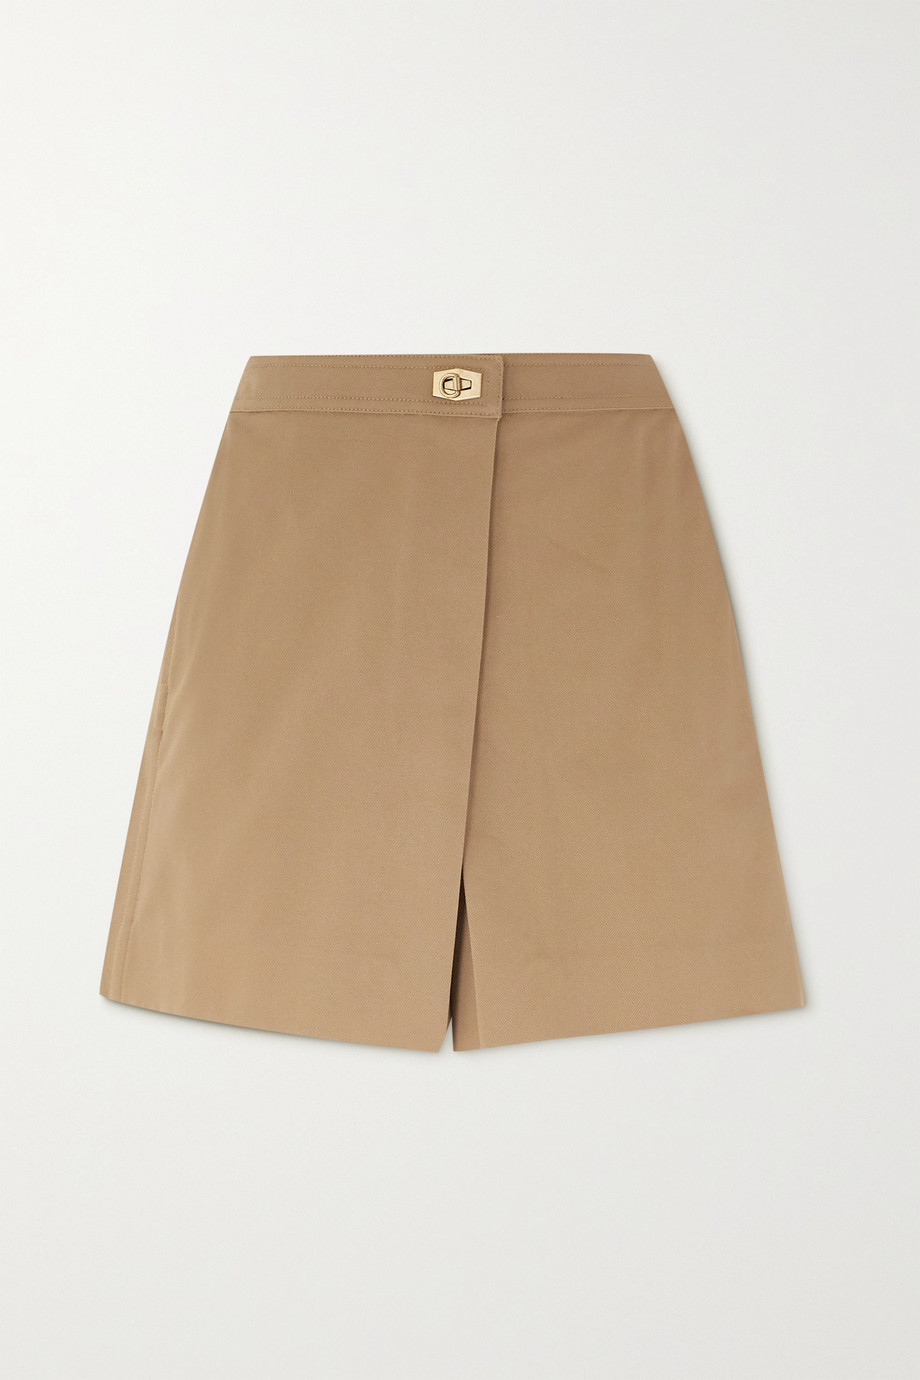 Givenchy Wrap-effect cotton-twill shorts